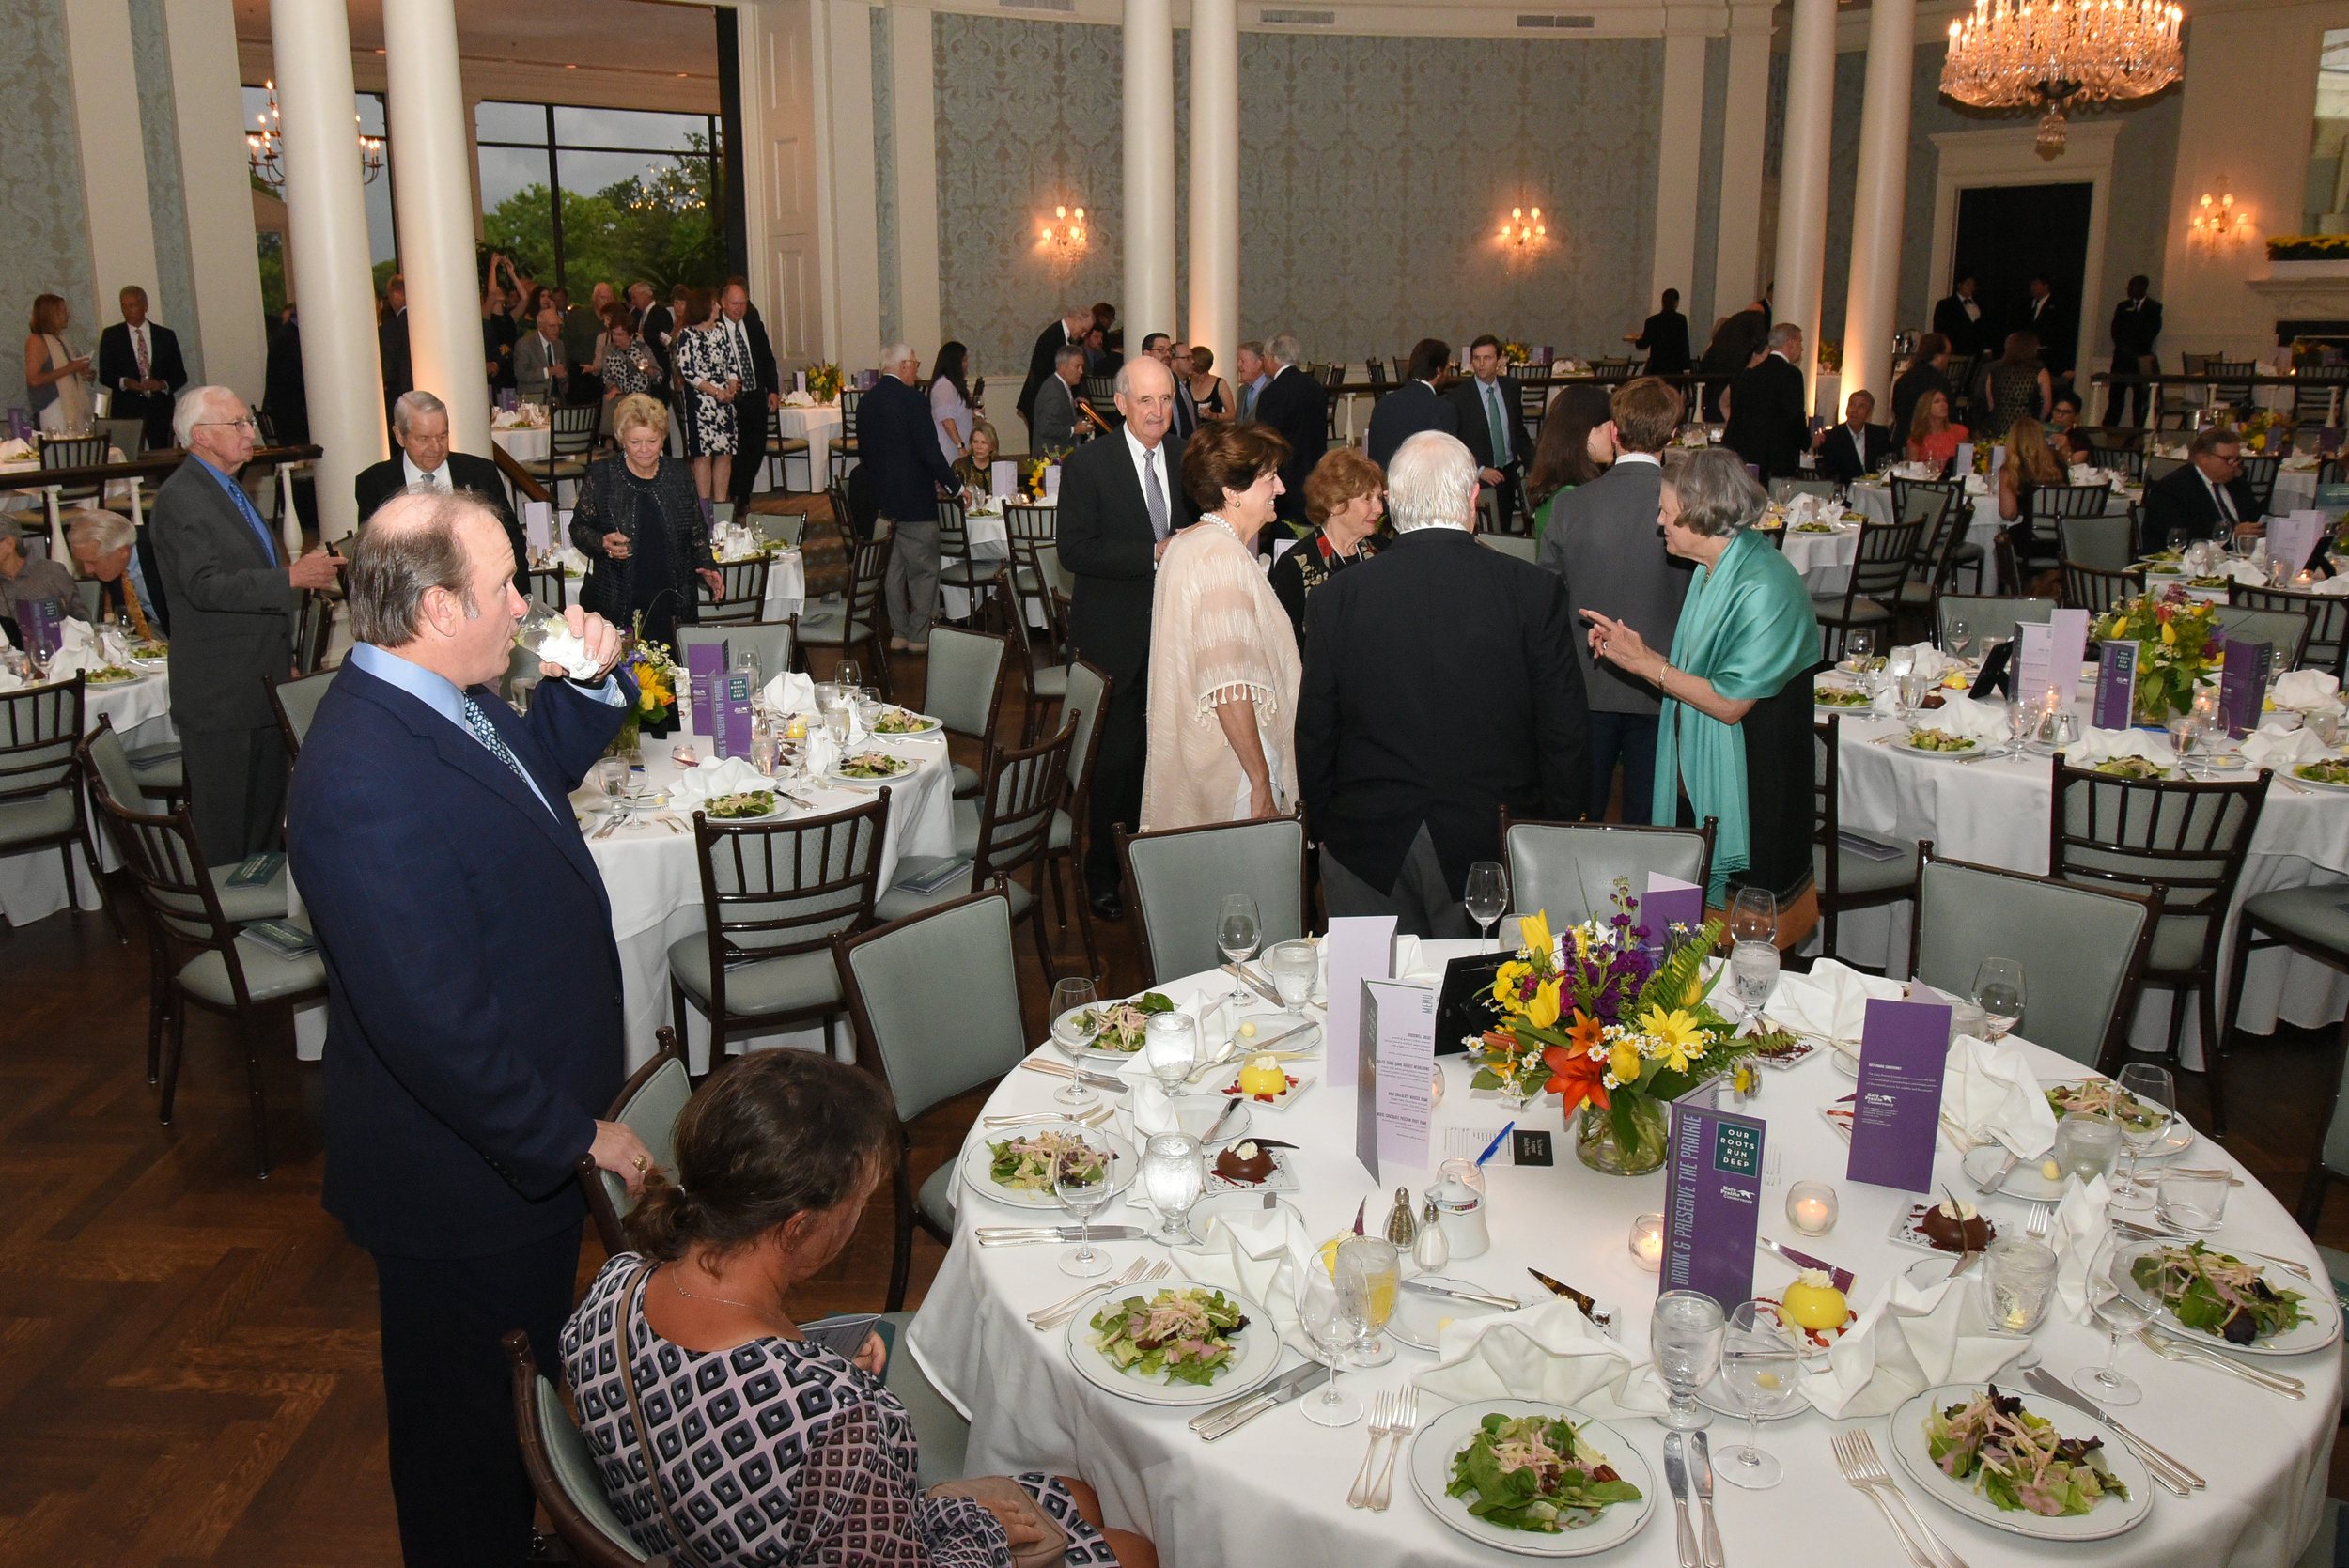 KPCGala_Crowd shot 2.JPG